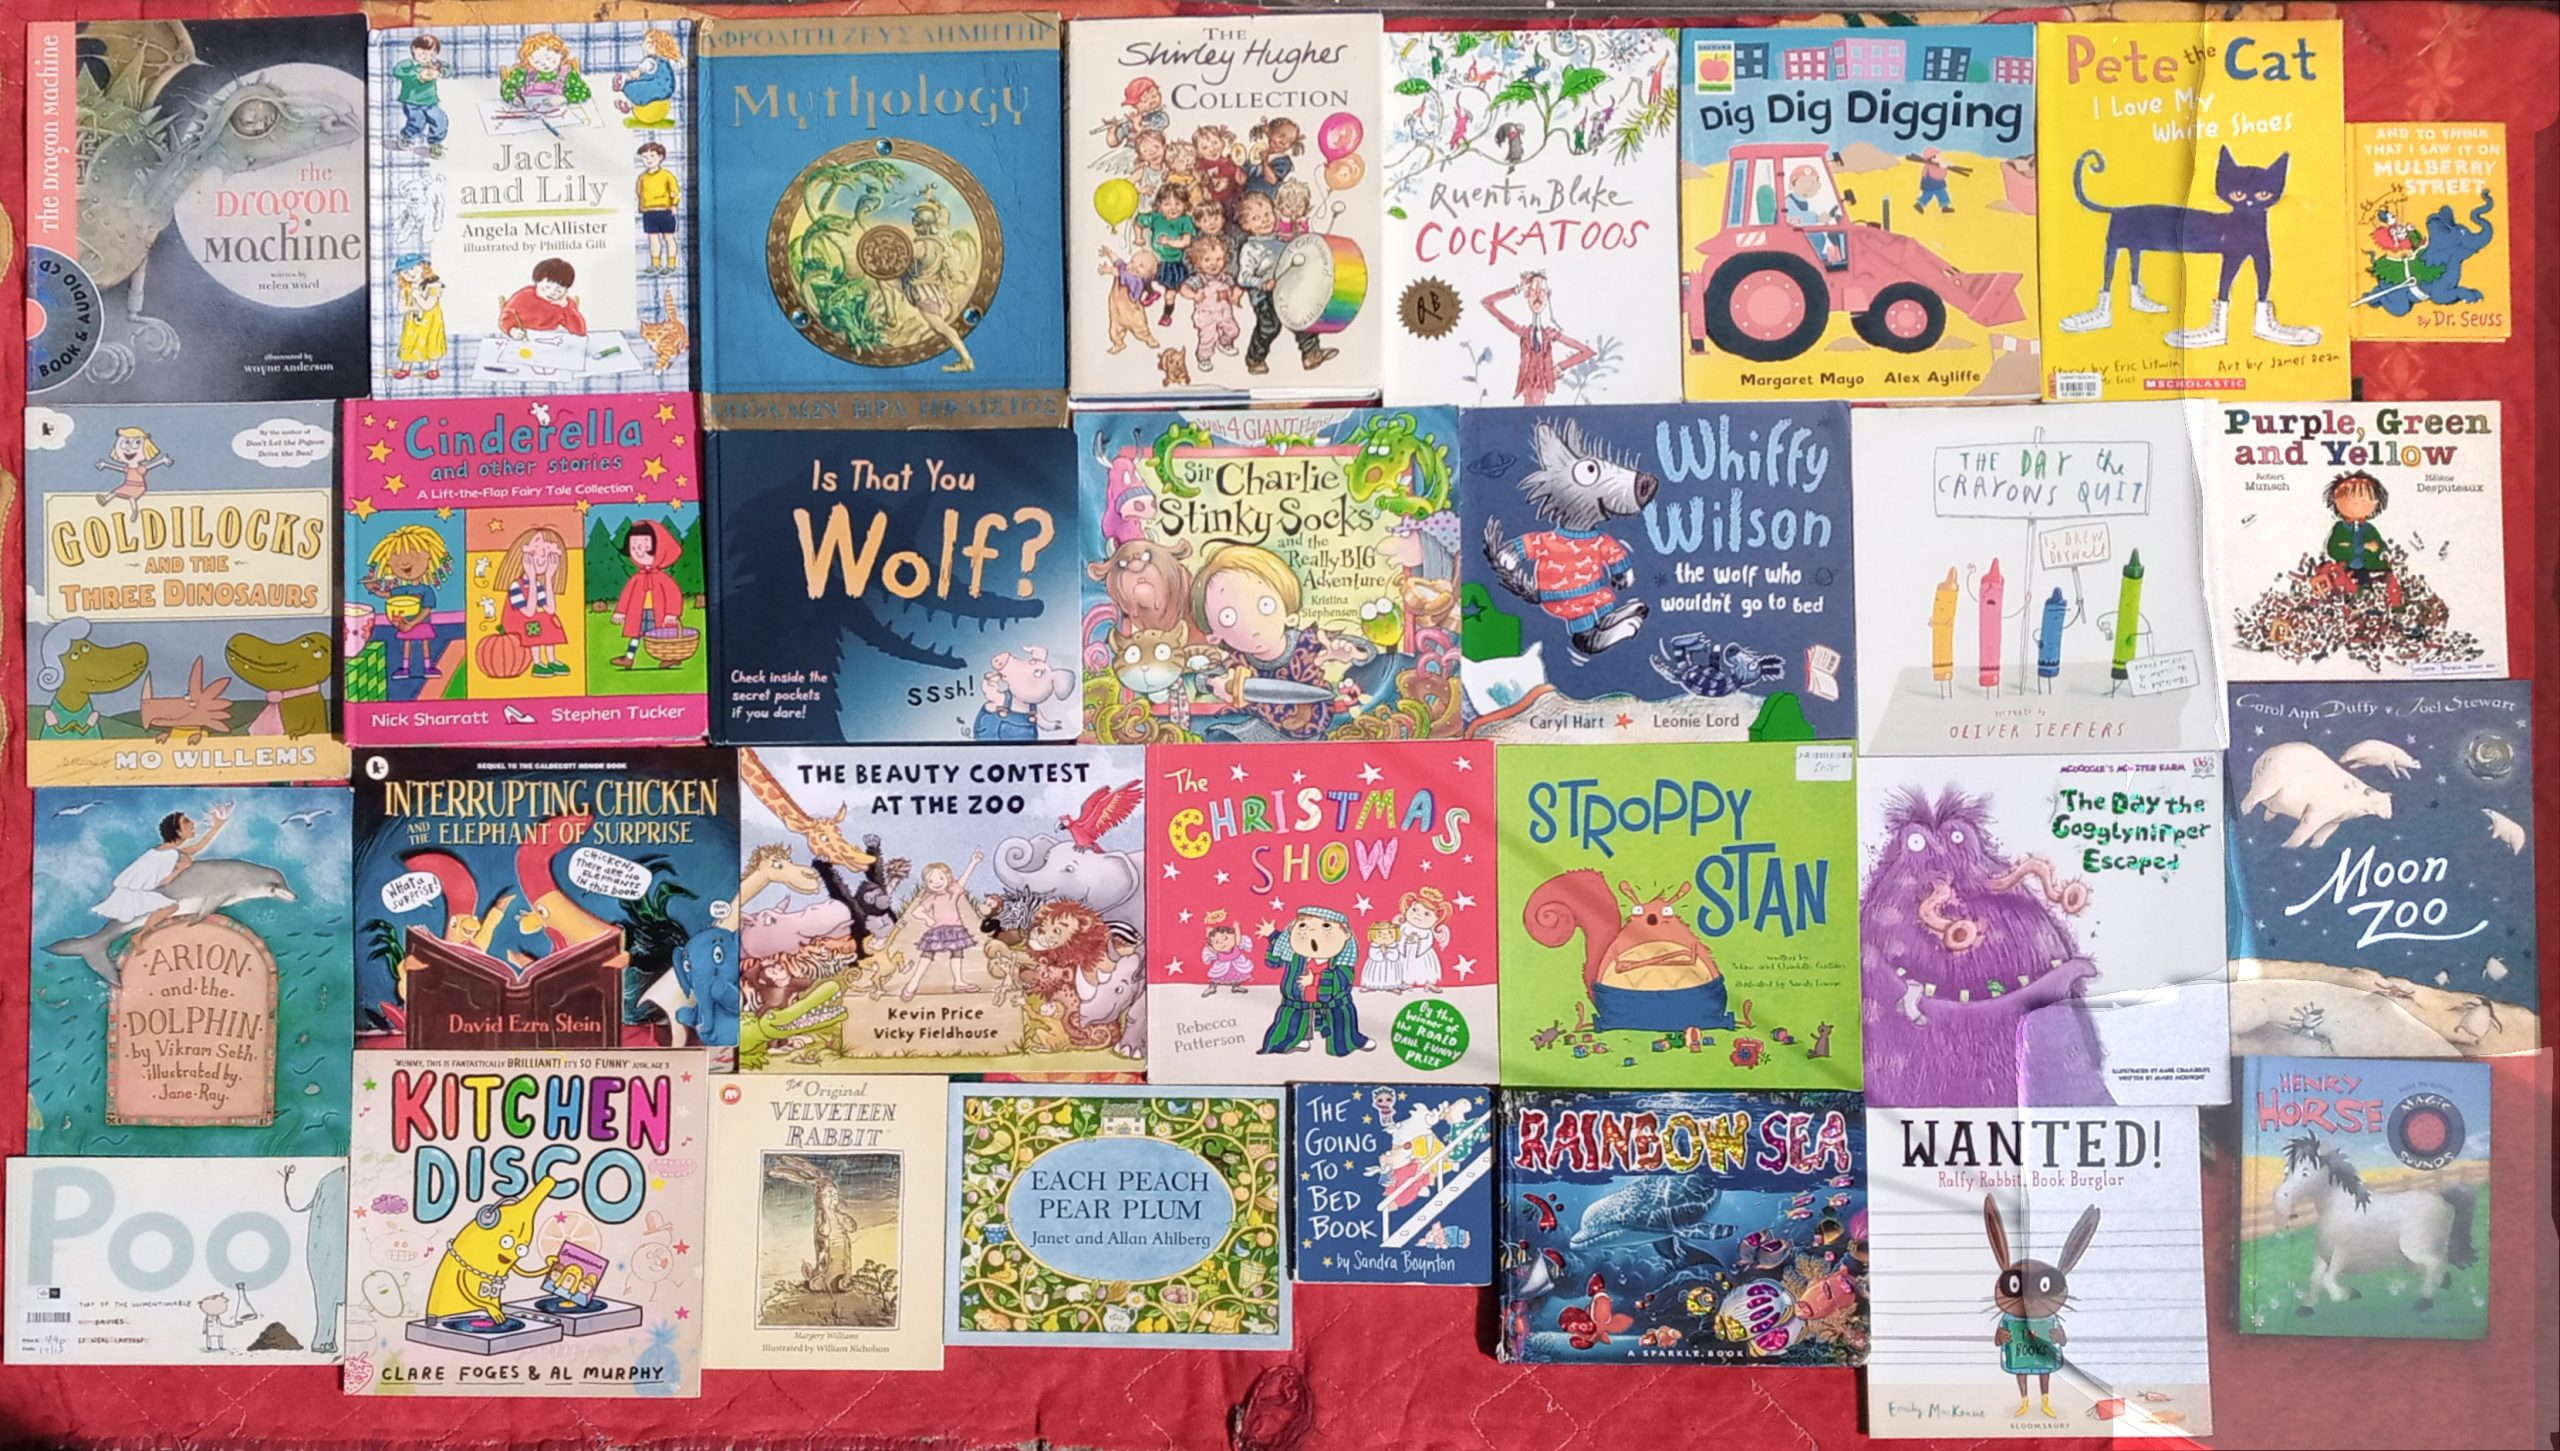 30 Incredibly Interesting Books Introduced to Baby S! (0-6 years) #kbcBookBingoJr